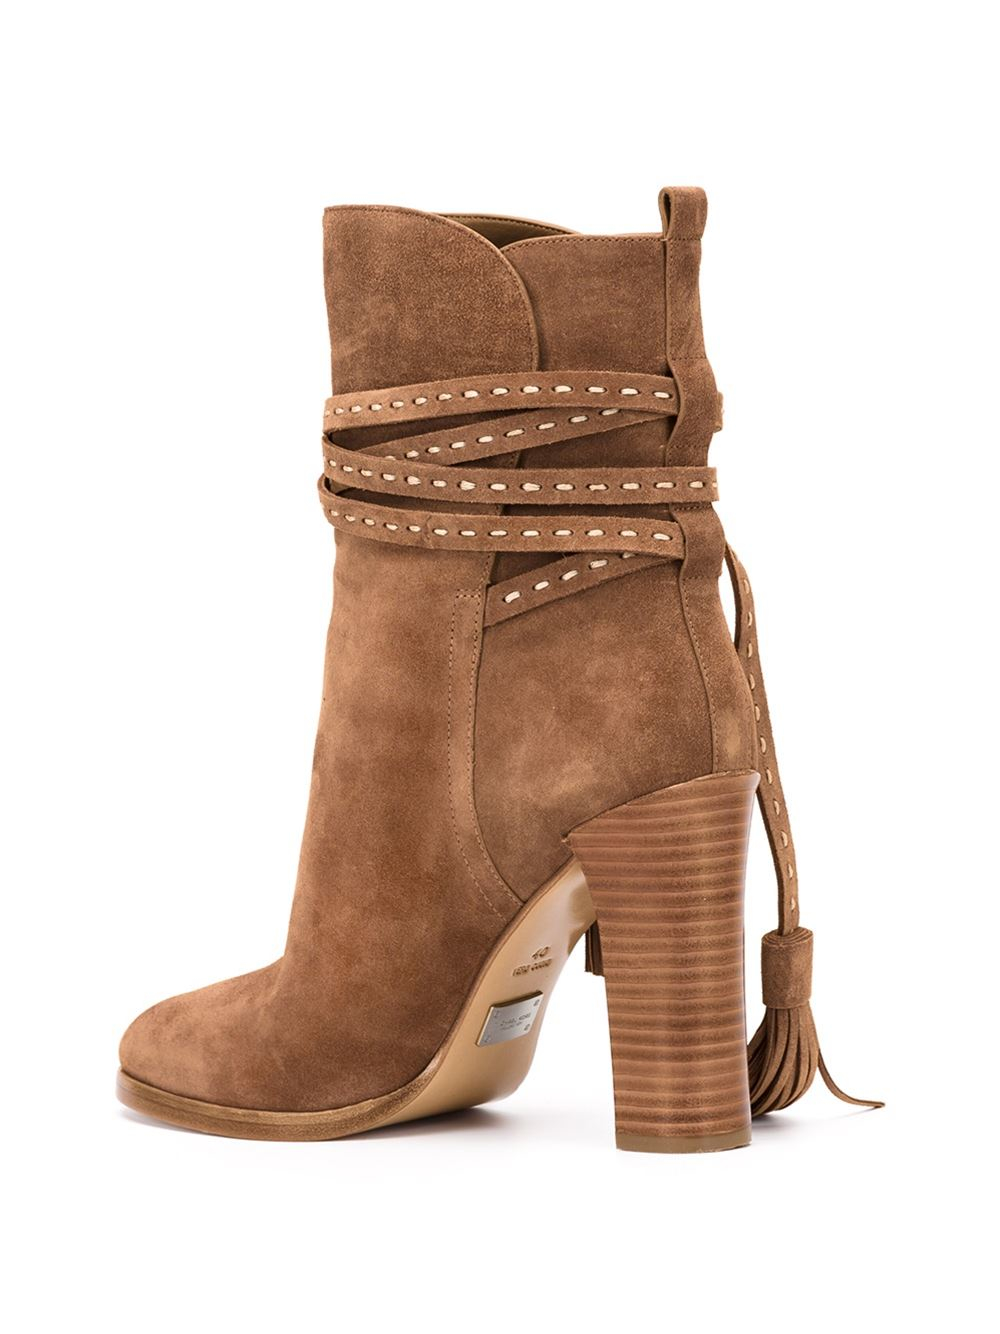 michael kors 180 palmer boots in brown lyst